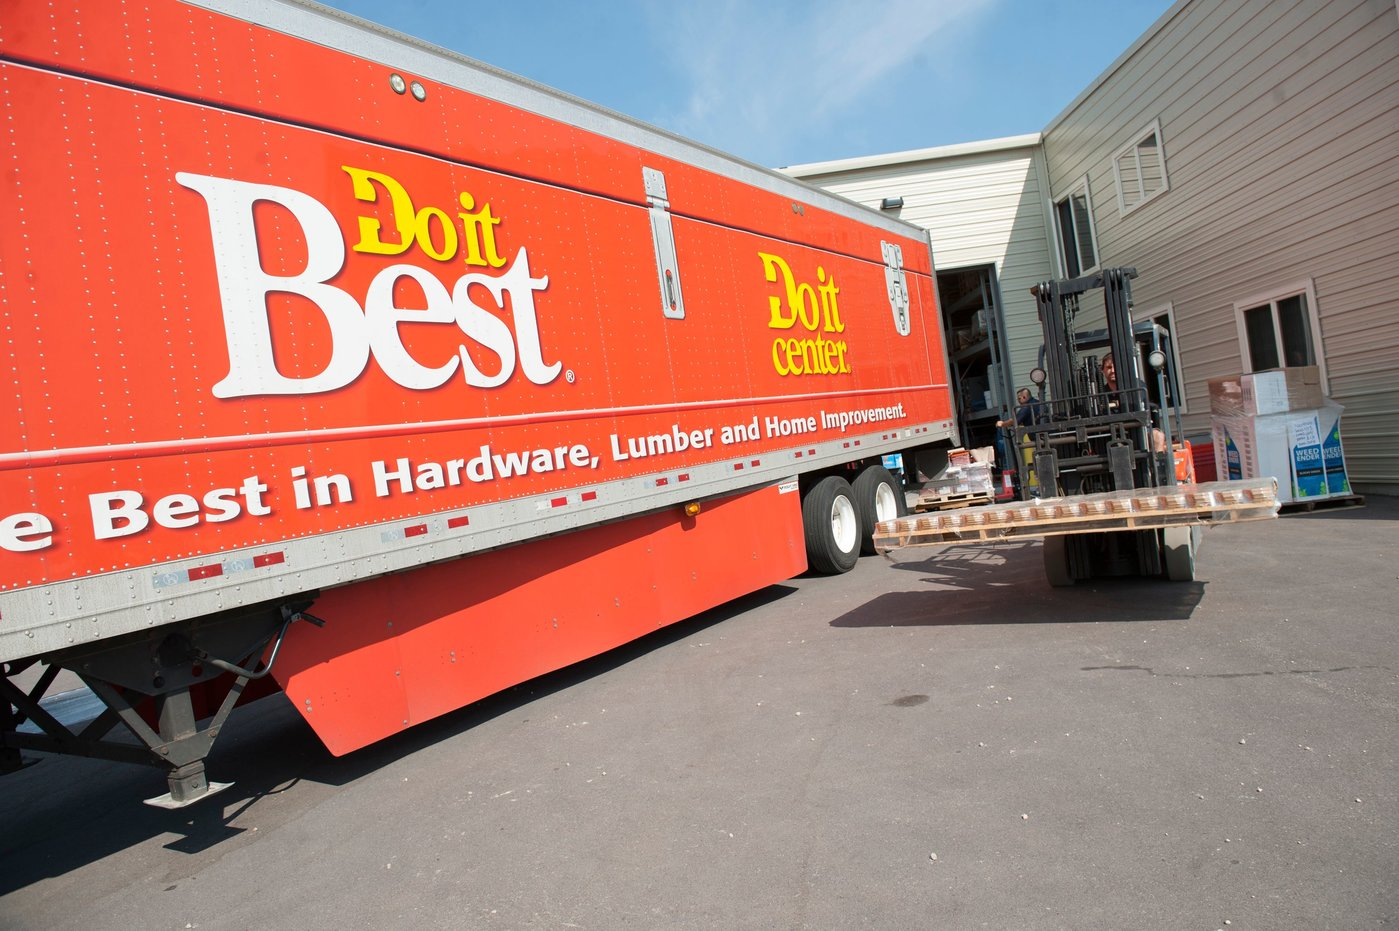 Do it Best trucks are doing their best to keep members stocked with product.